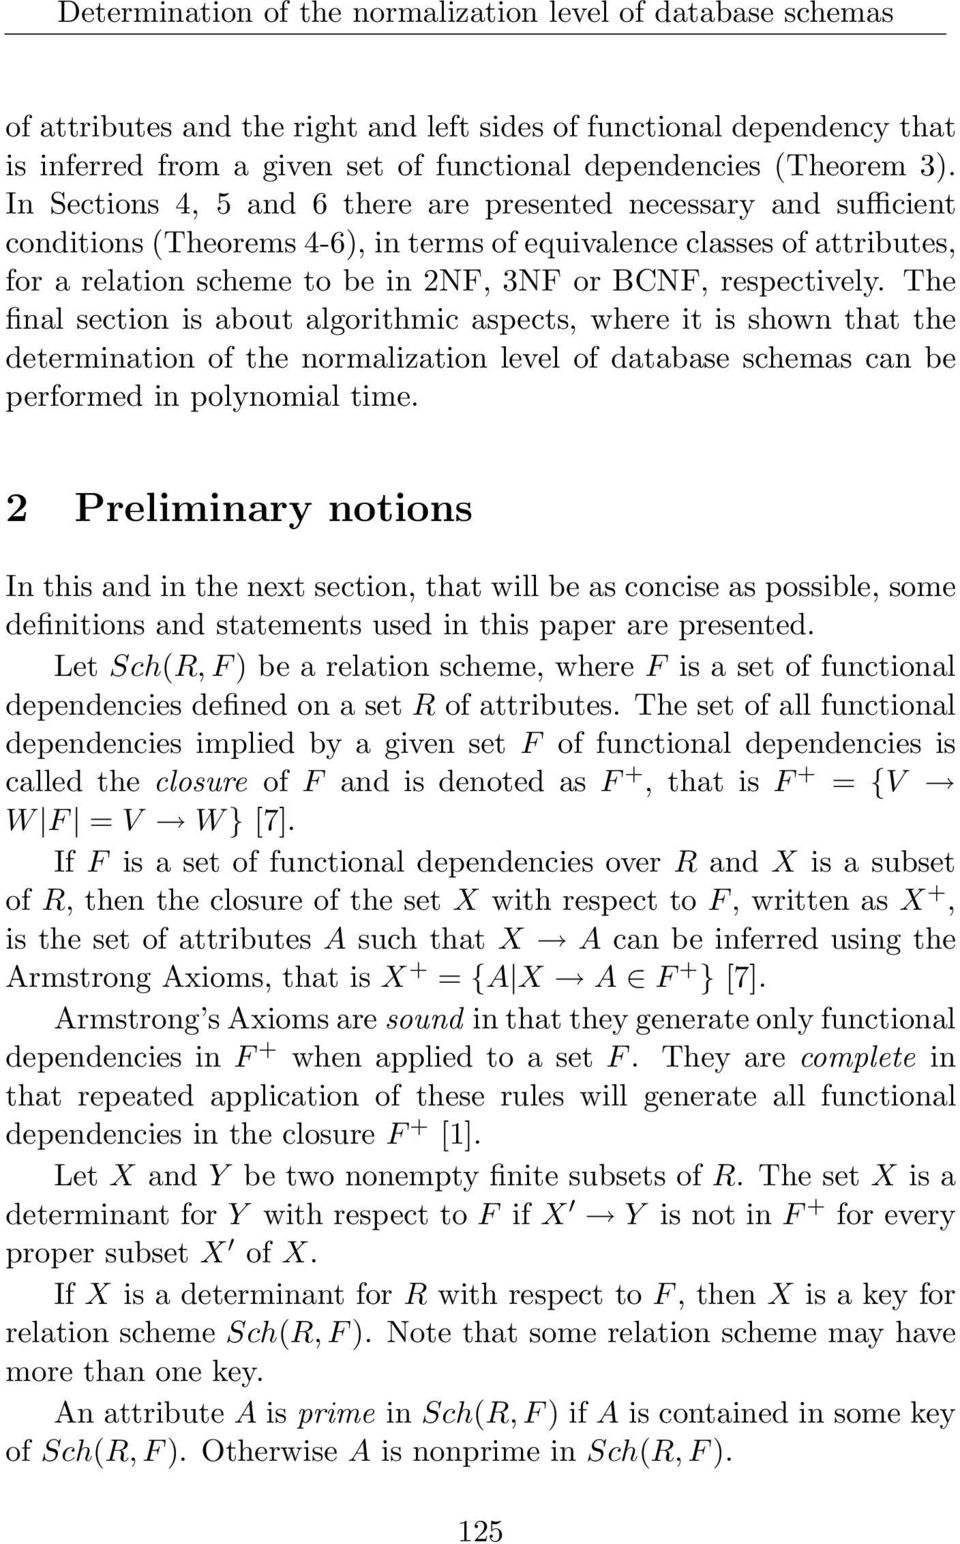 respectively. The final section is about algorithmic aspects, where it is shown that the determination of the normalization level of database schemas can be performed in polynomial time.